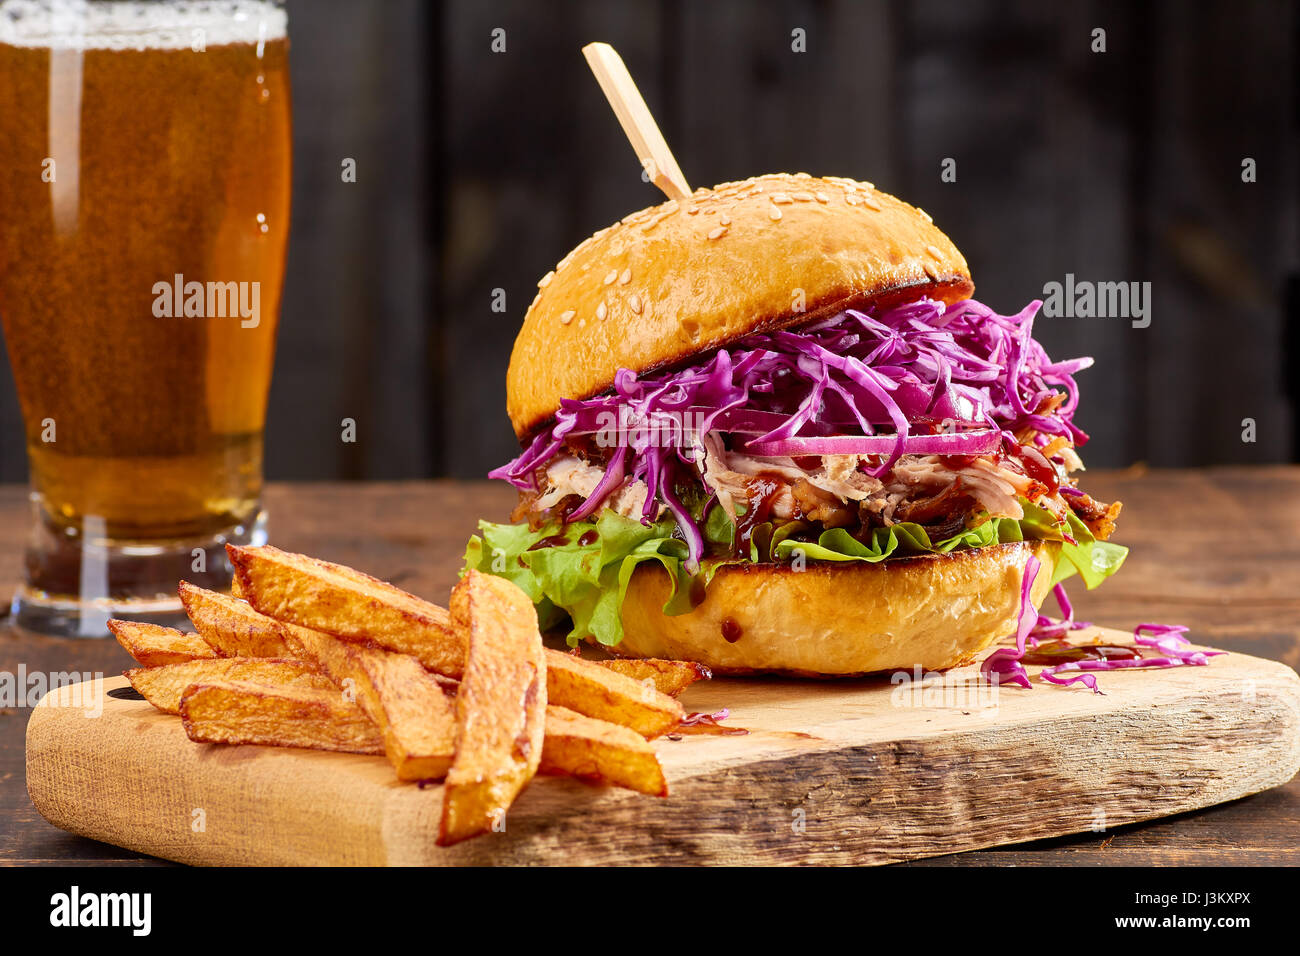 Sandwith with pulled pork and french fries on wooden background - Stock Image